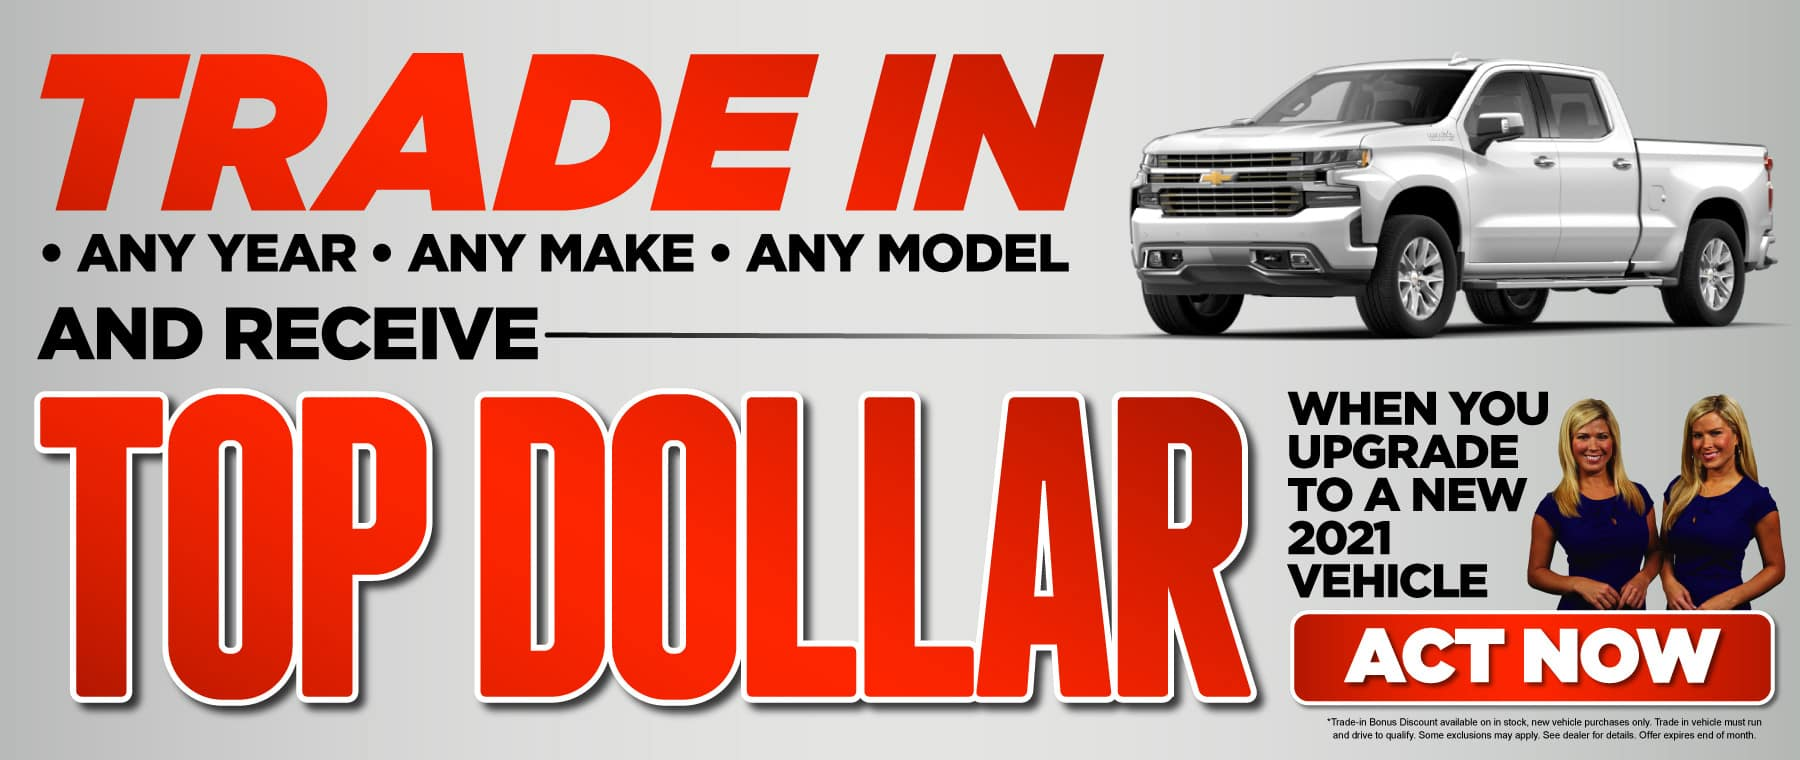 Trade in any year, any make, any model and receive top dollar when you upgrade to a new 2021 vehicle | ACT NOW